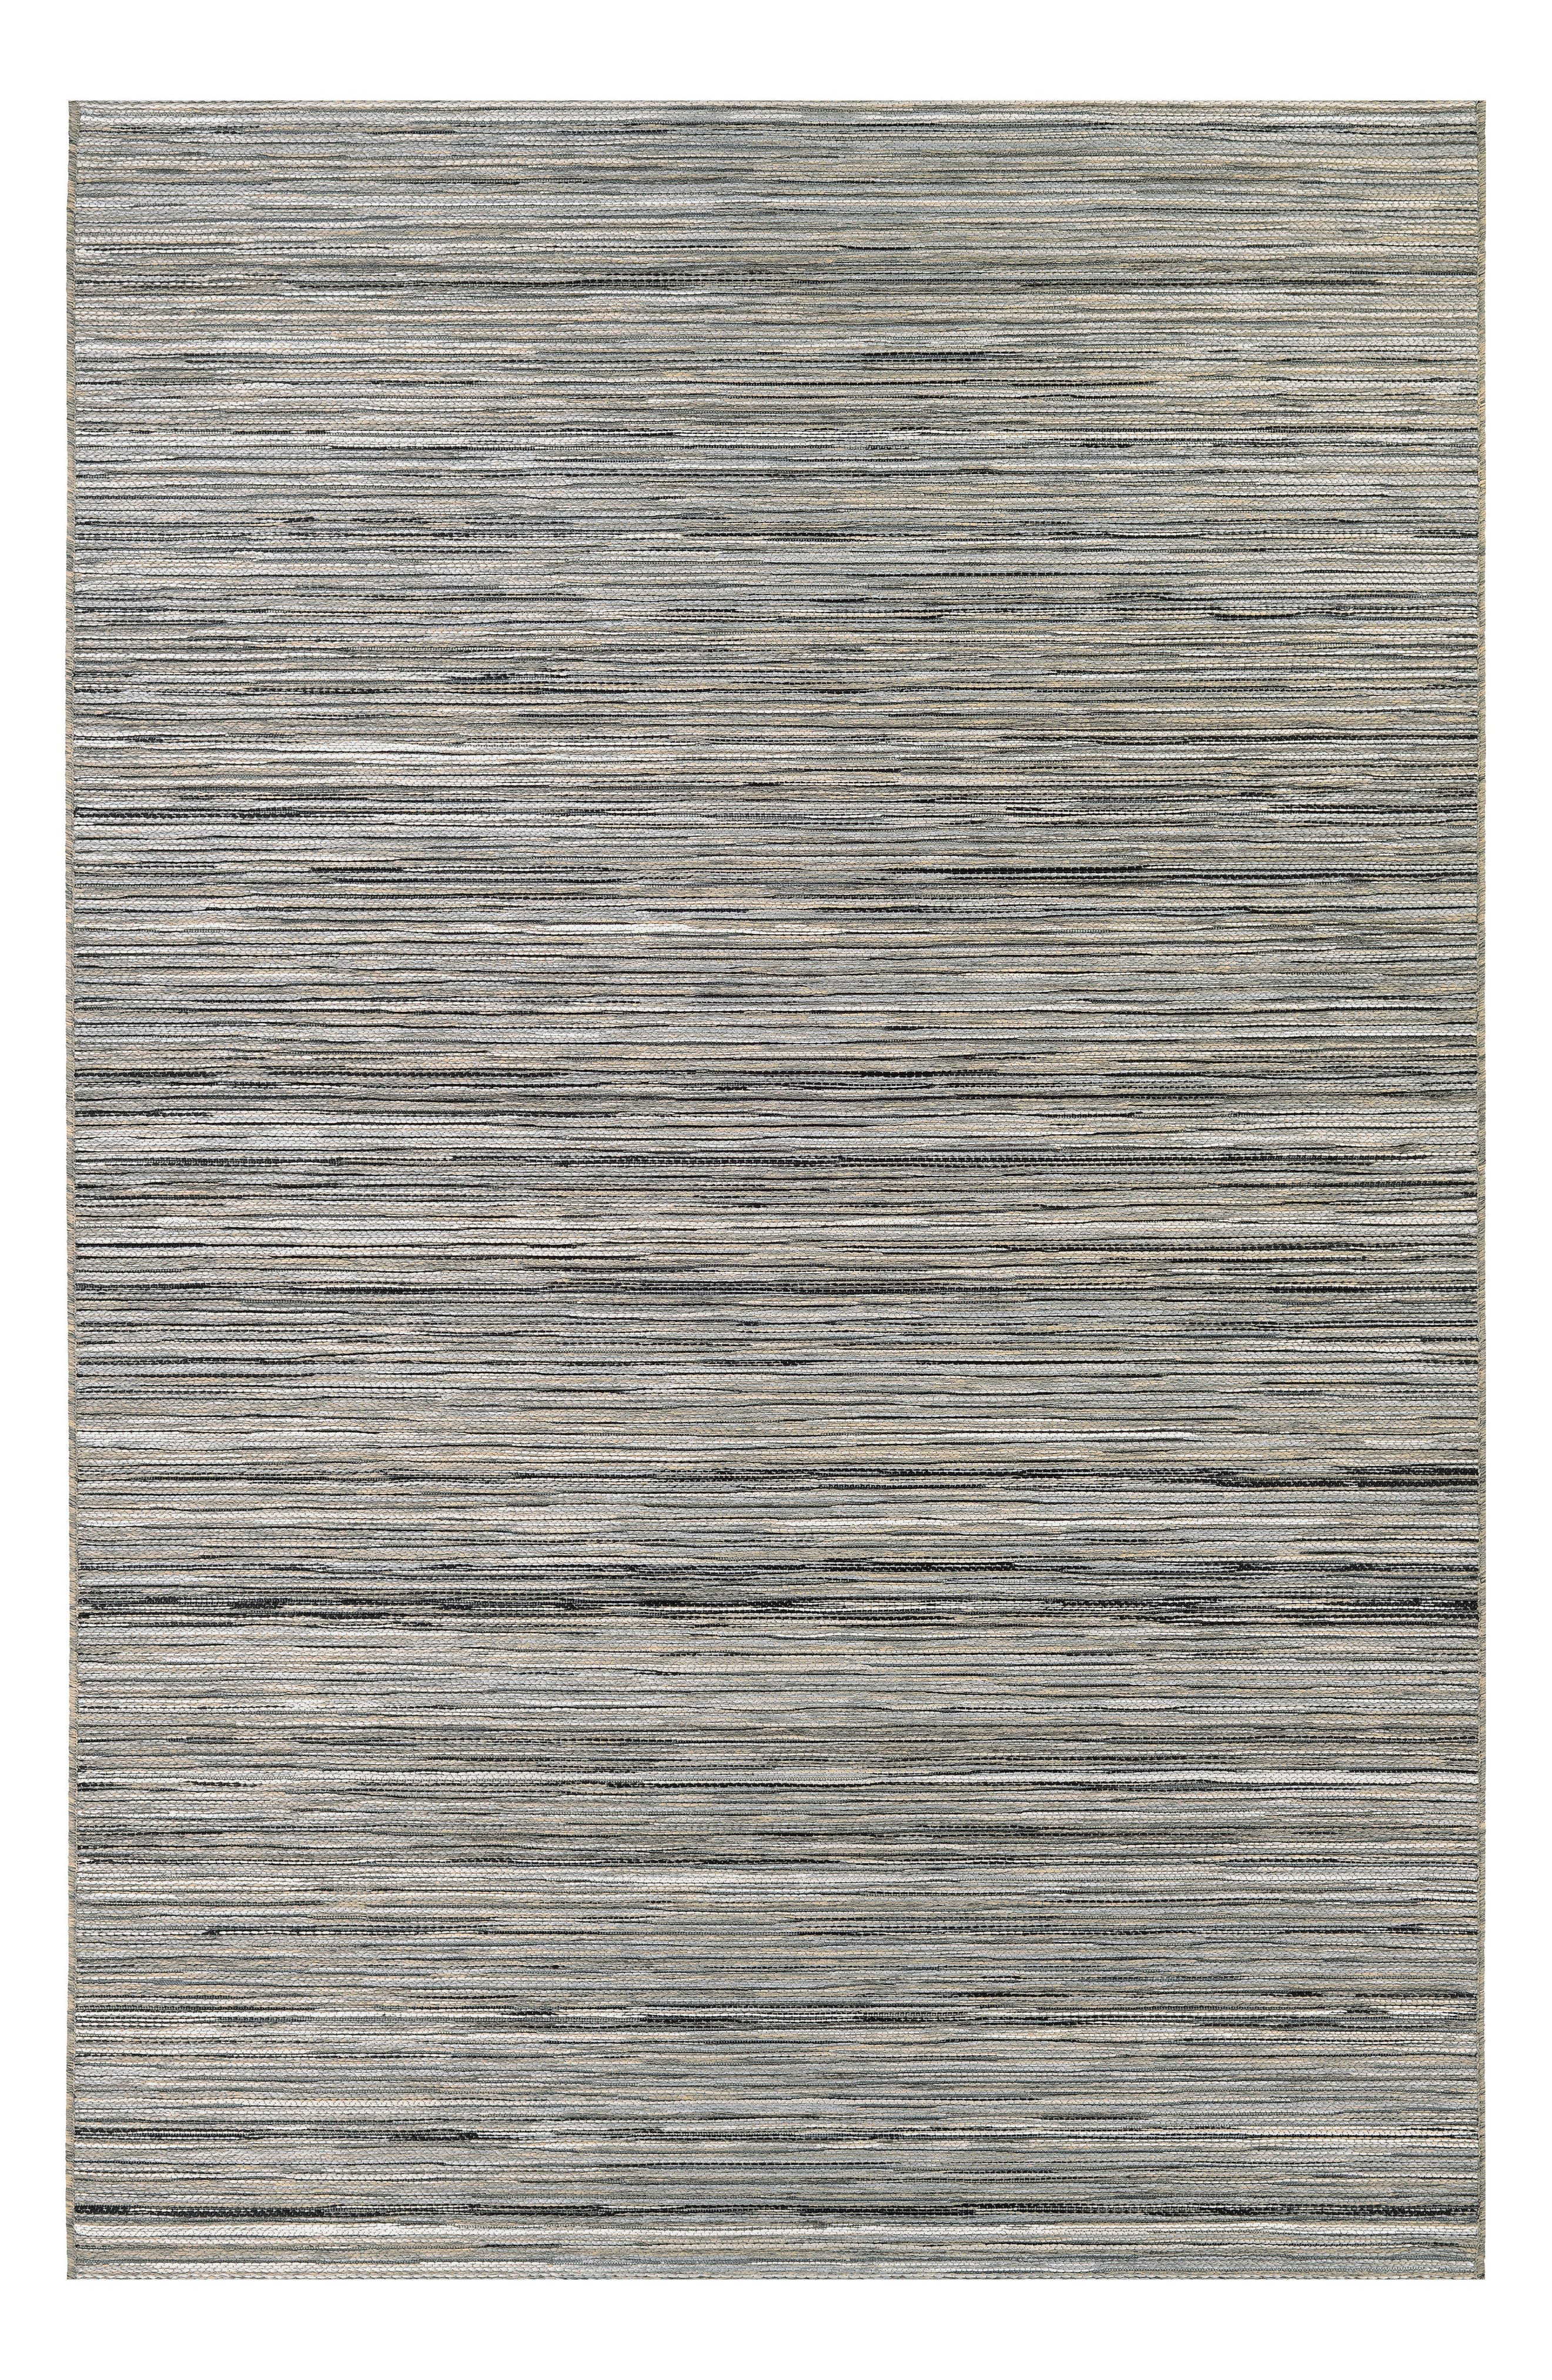 Hinsdale Indoor/Outdoor Rug,                             Main thumbnail 1, color,                             025